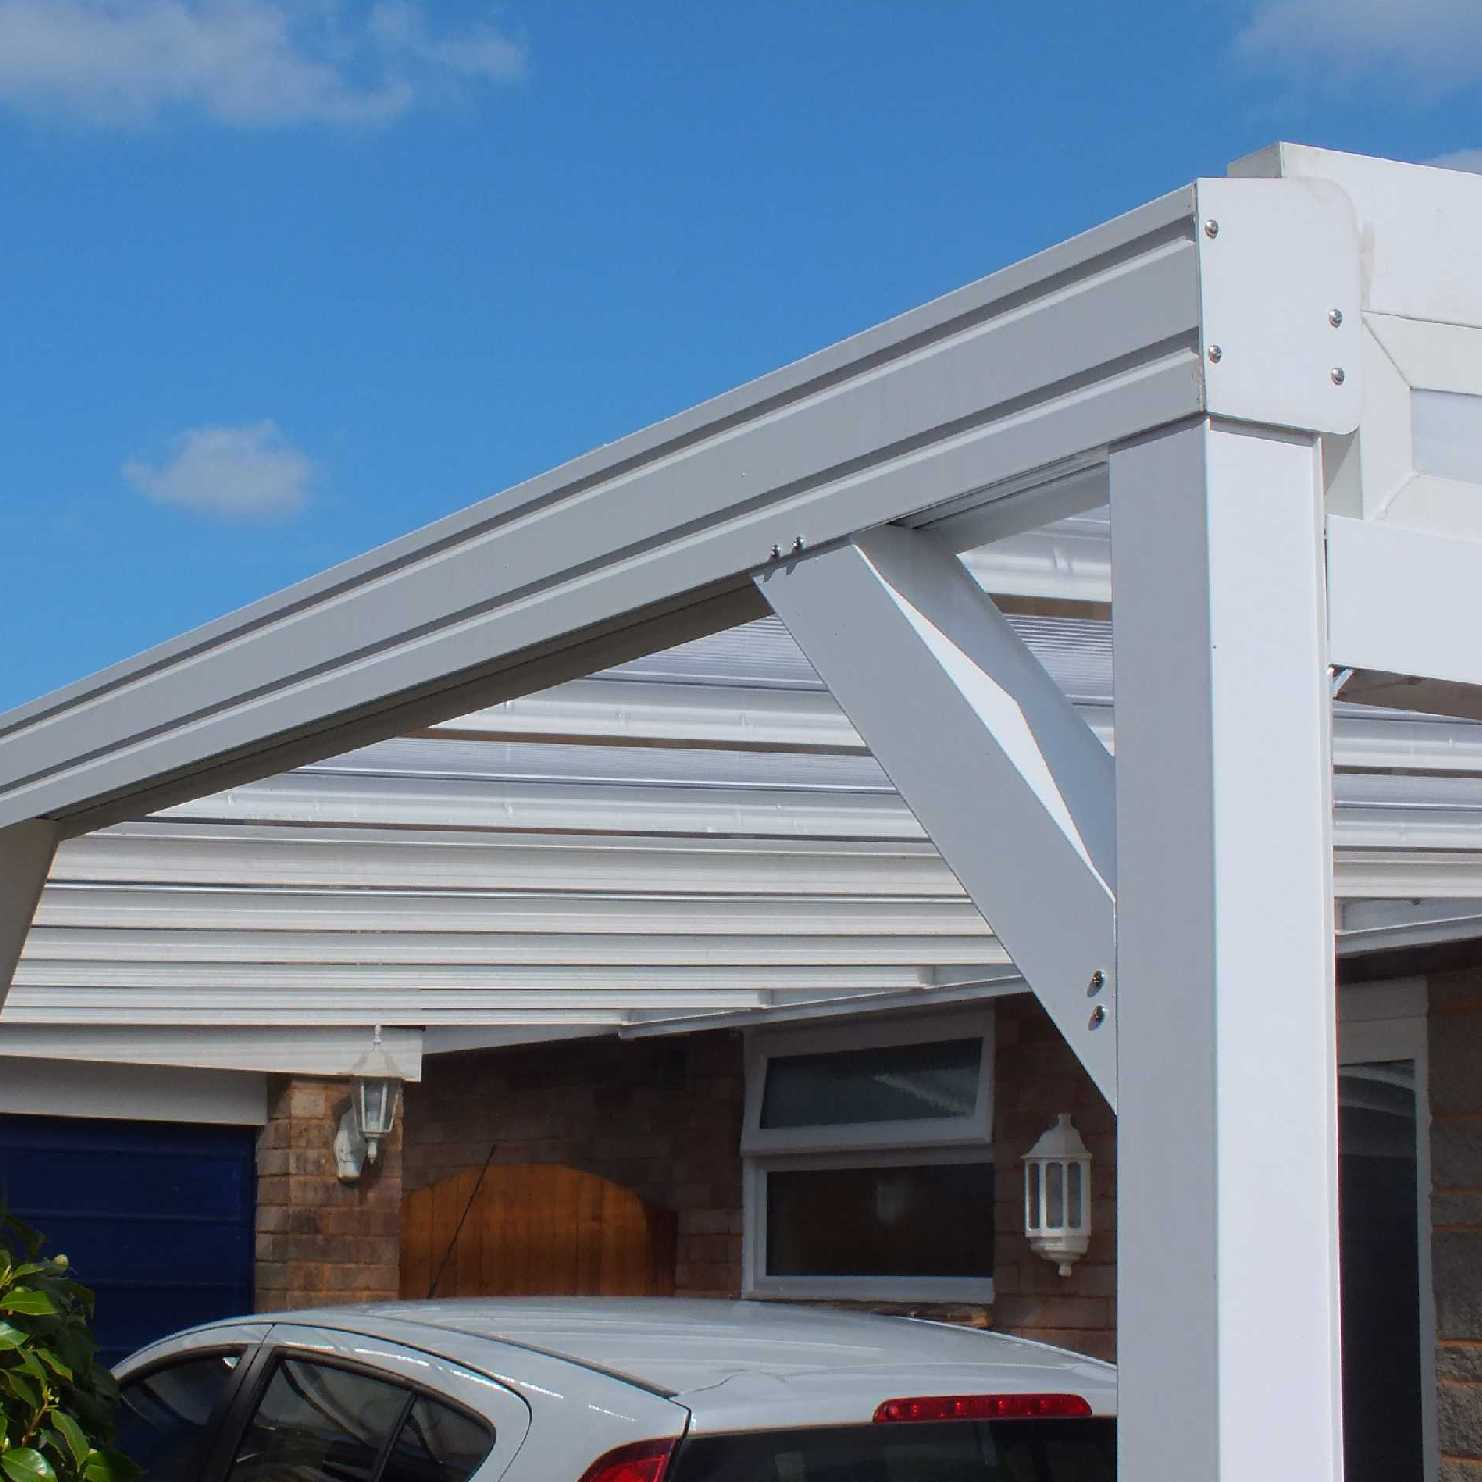 Great deals on Omega Smart Lean-To Canopy with 16mm Polycarbonate Glazing - 6.3m (W) x 2.5m (P), (4) Supporting Posts